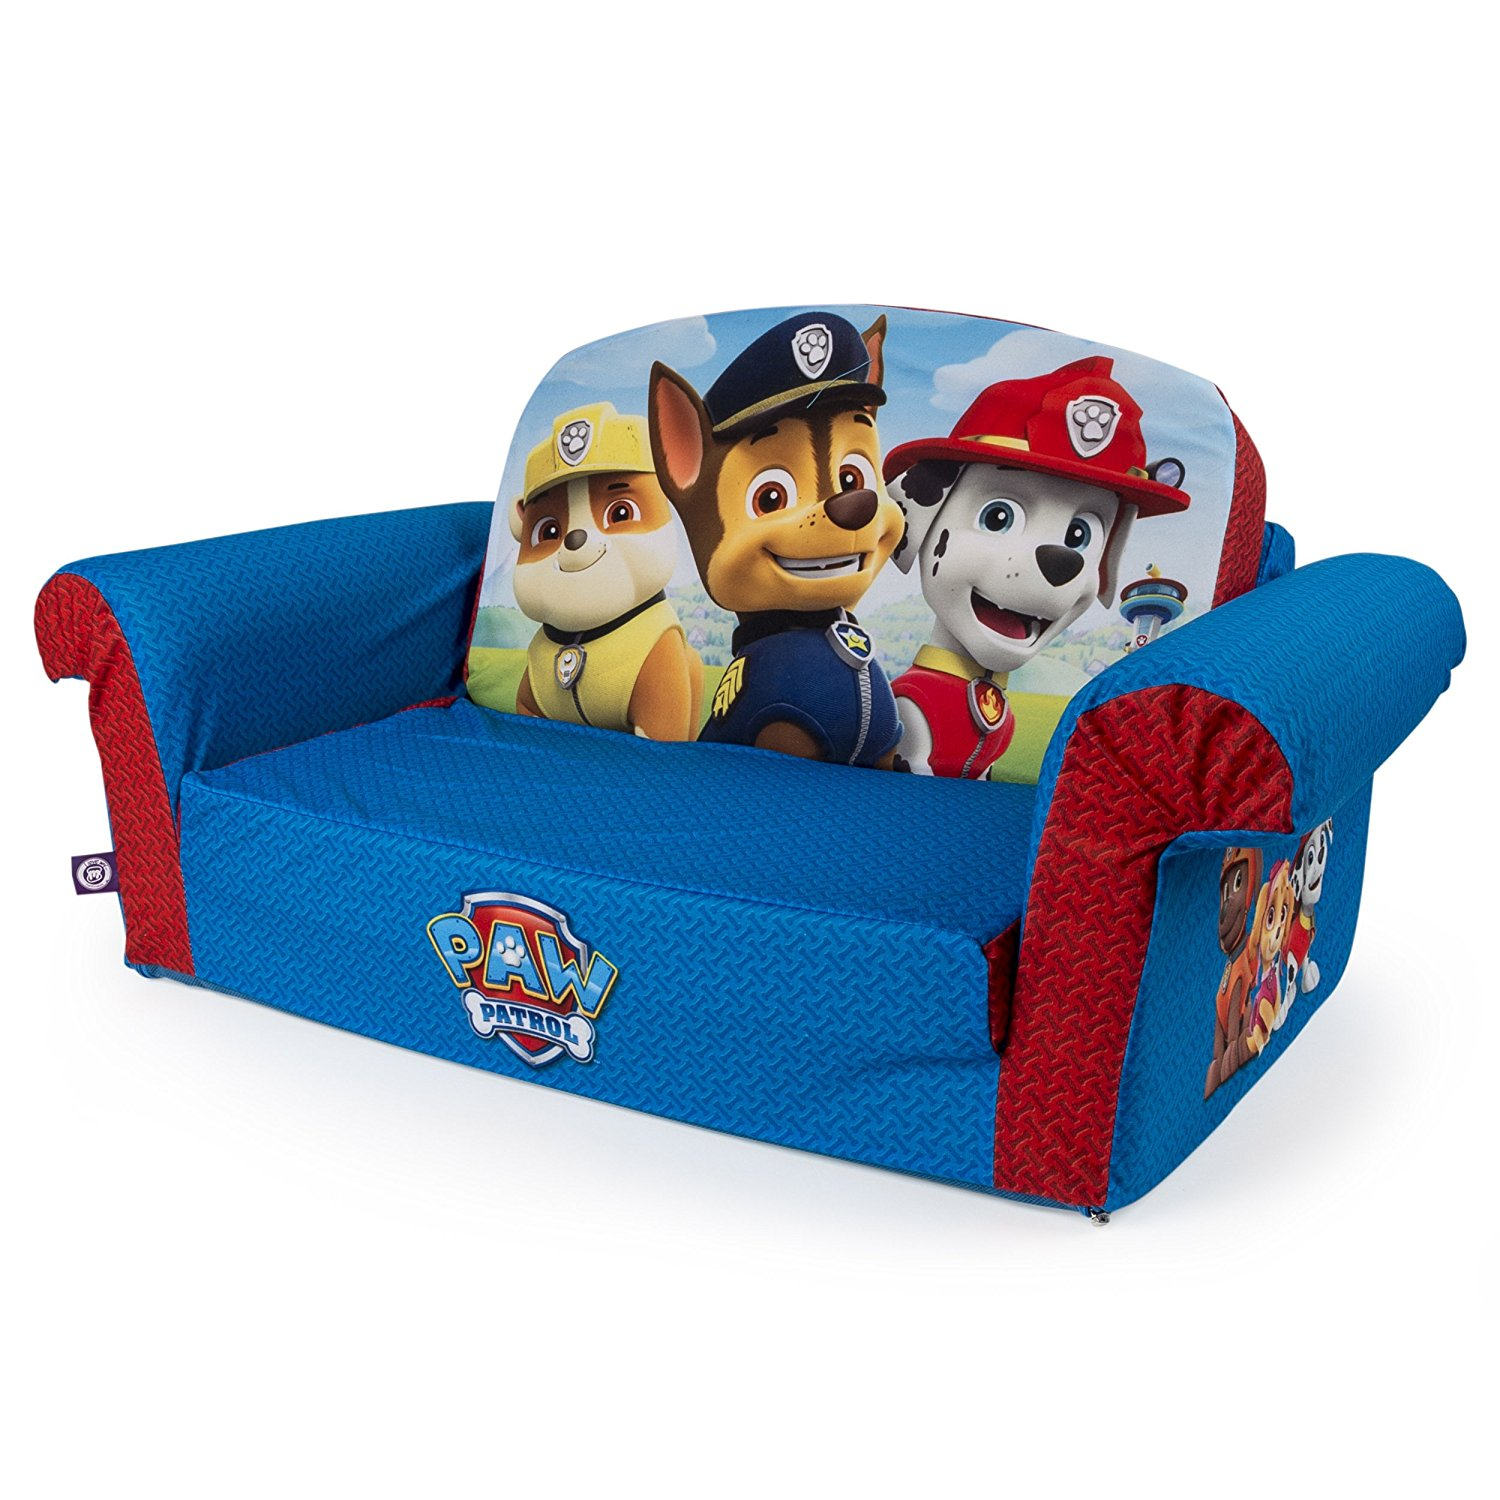 Marshmallow Furniture Children S 2 In 1 Flip Open Foam Sofa